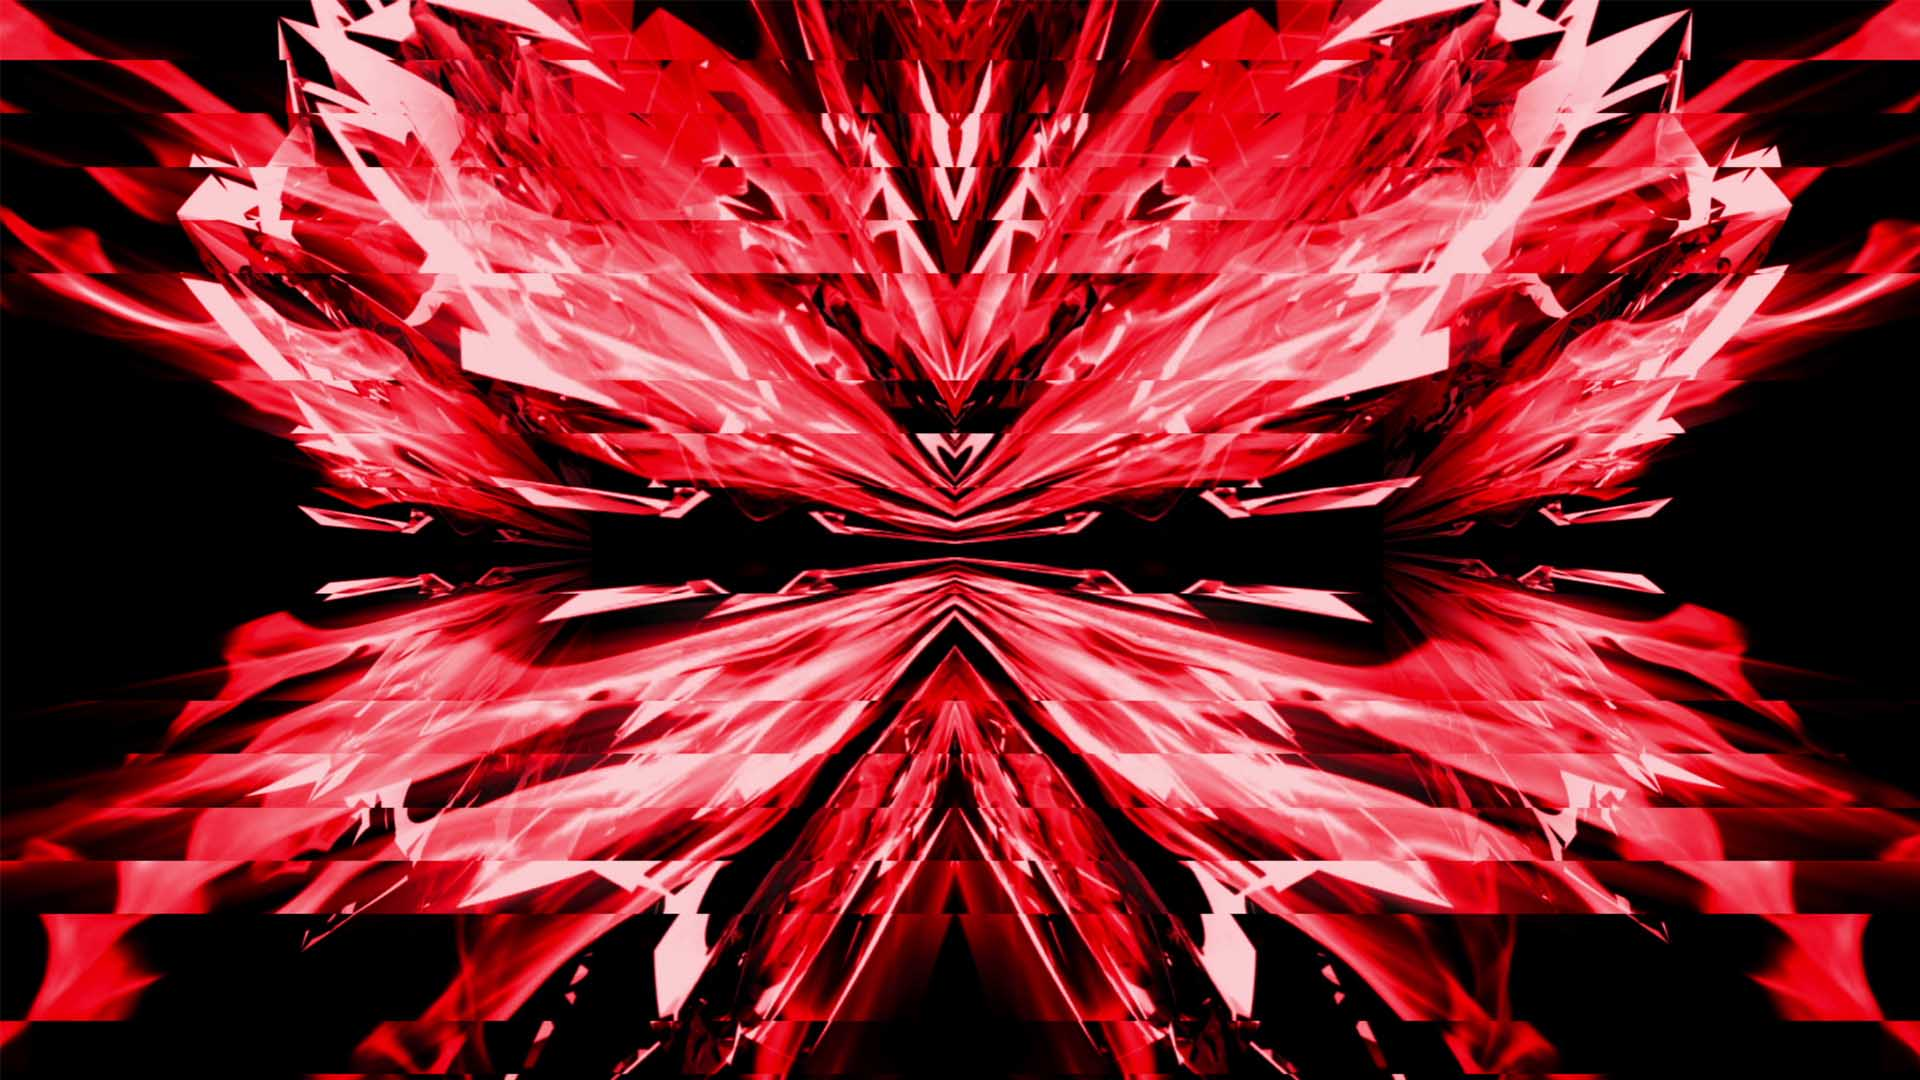 Lovely_Red_Video_background_Slow_VJ_Loop_HD